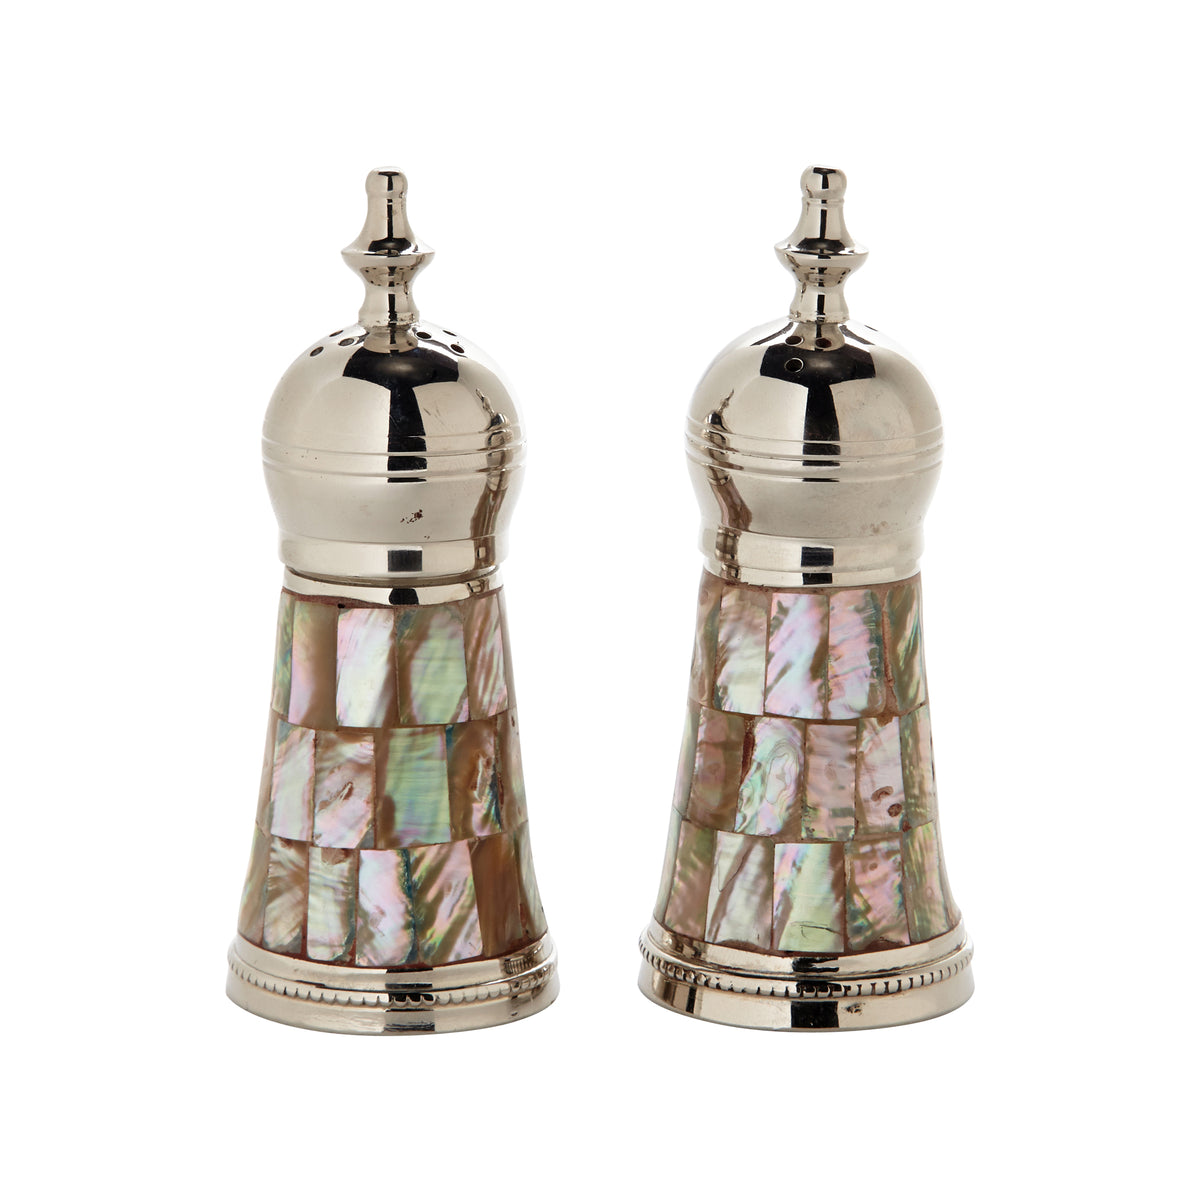 Salt and Pepper Shaker with Mother of Pearl